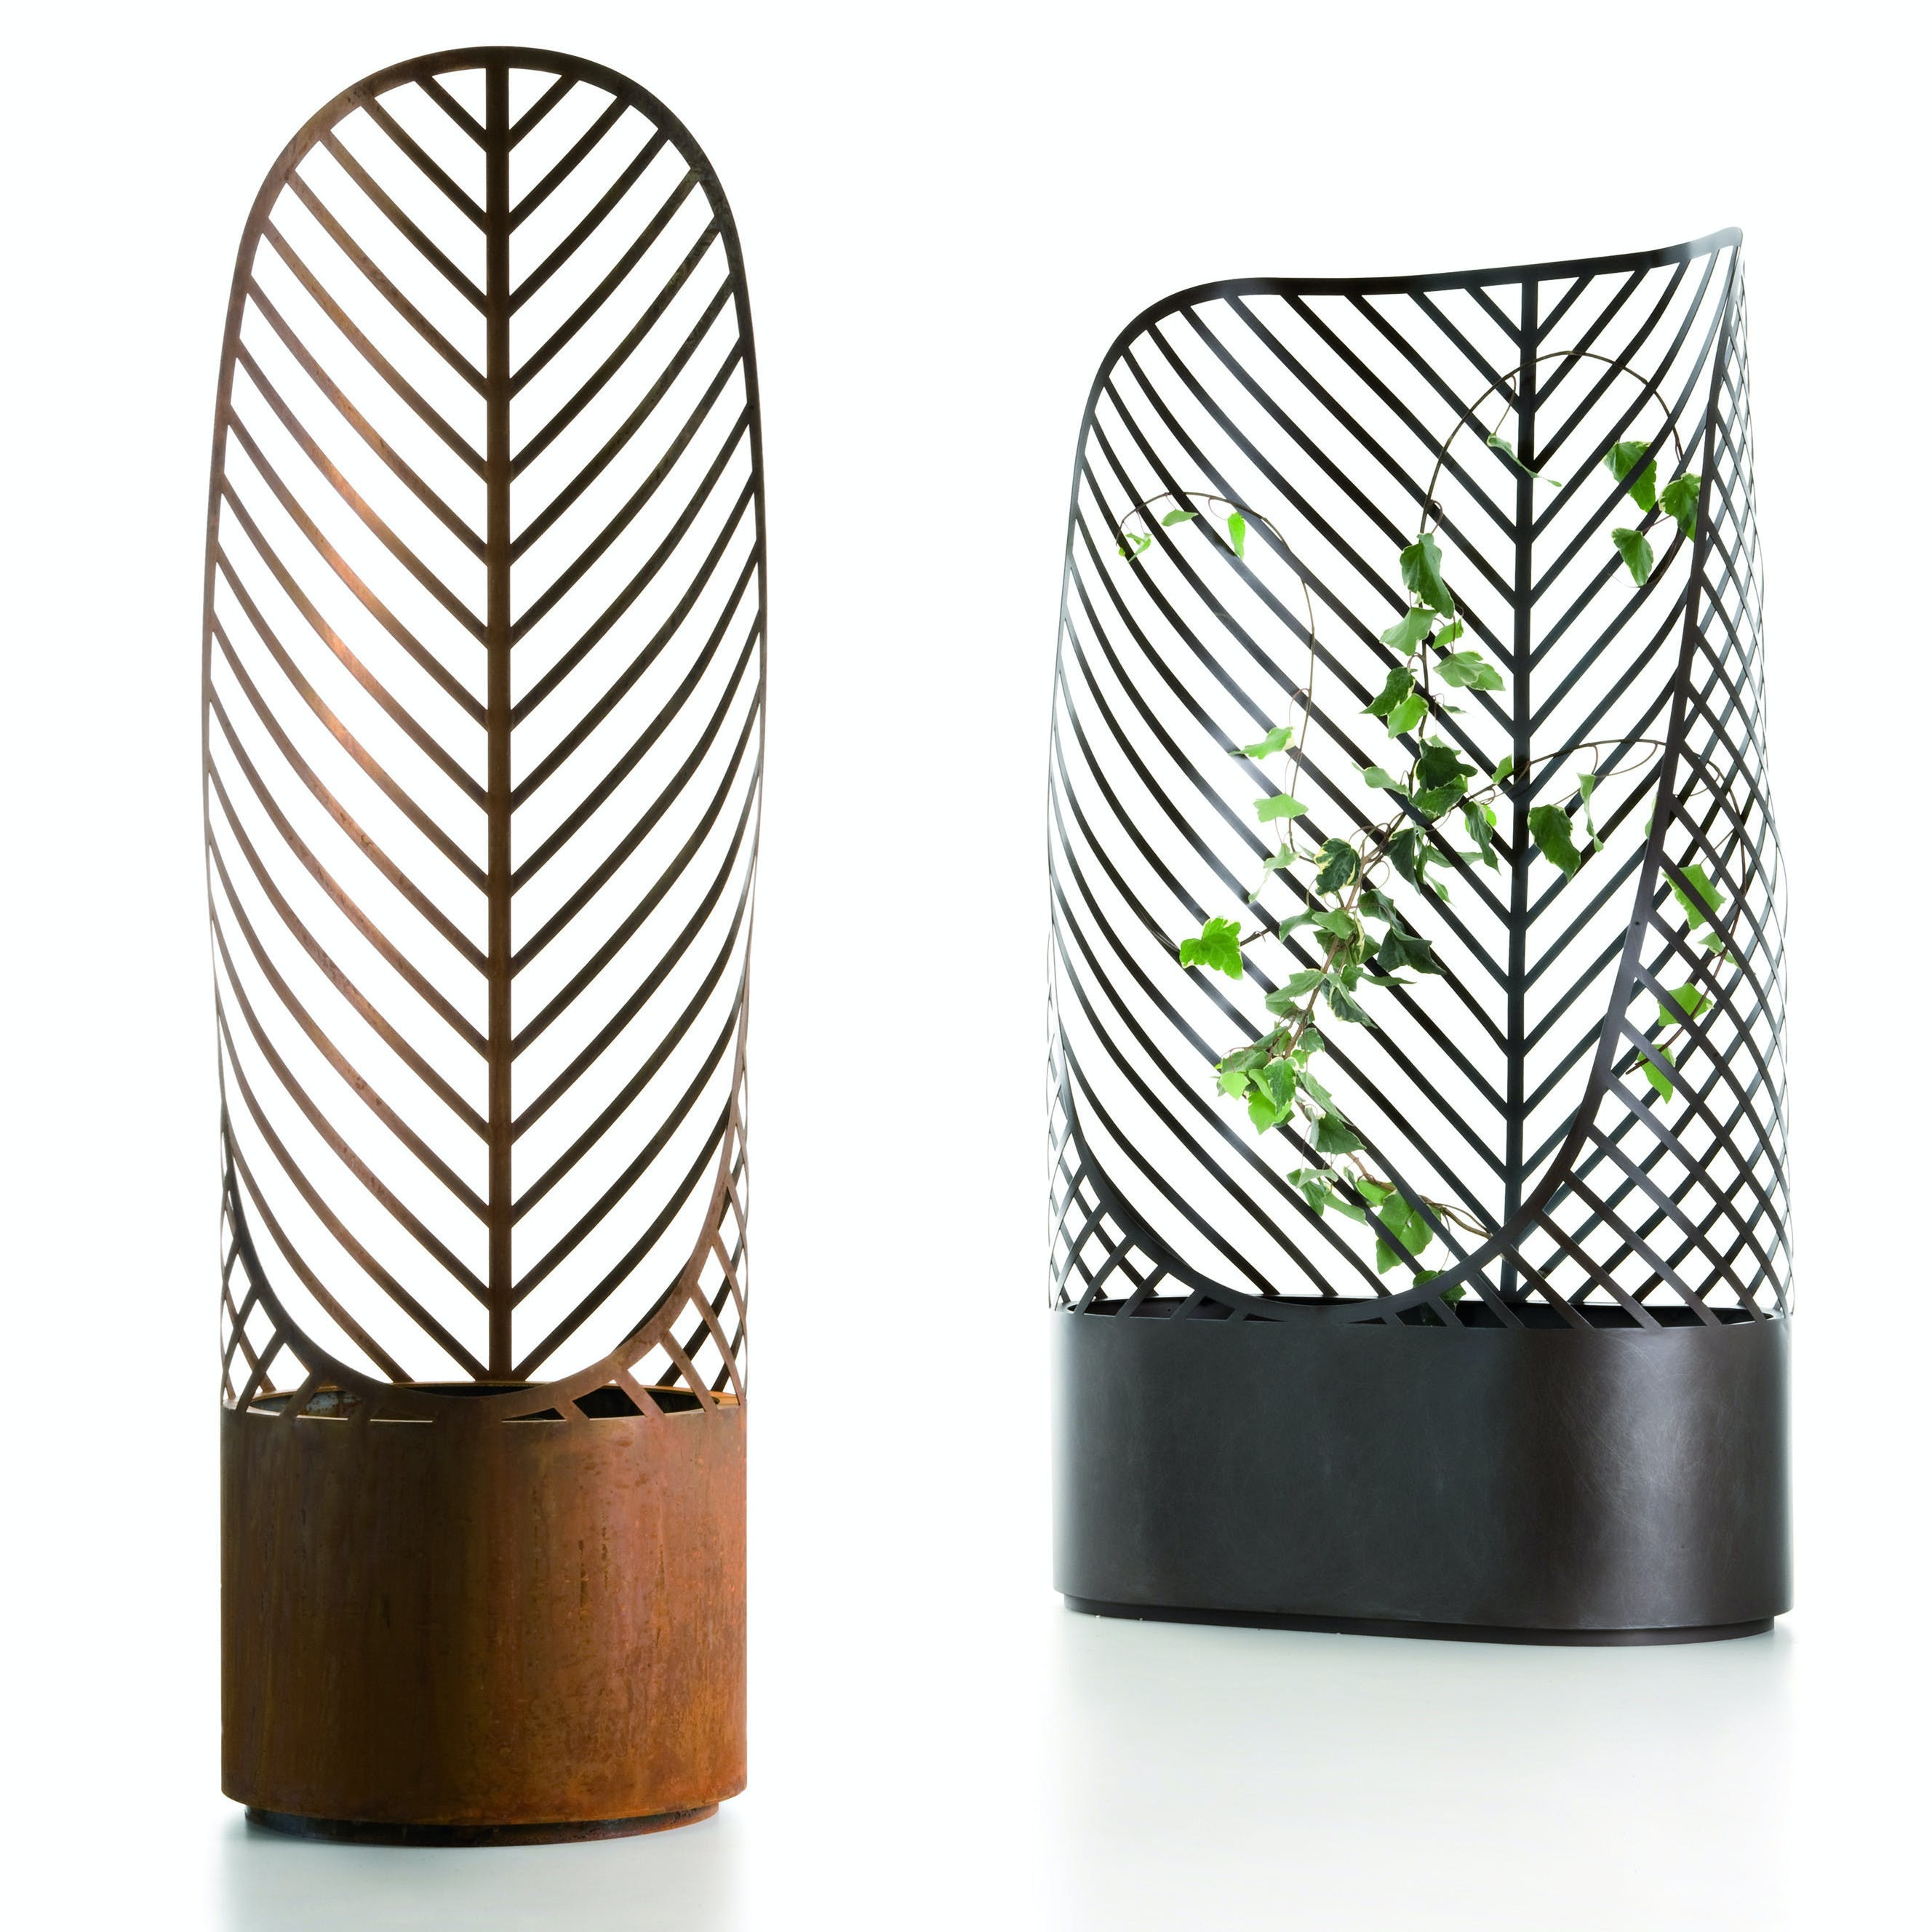 De Castelli Screen Pot Duo Haute Living